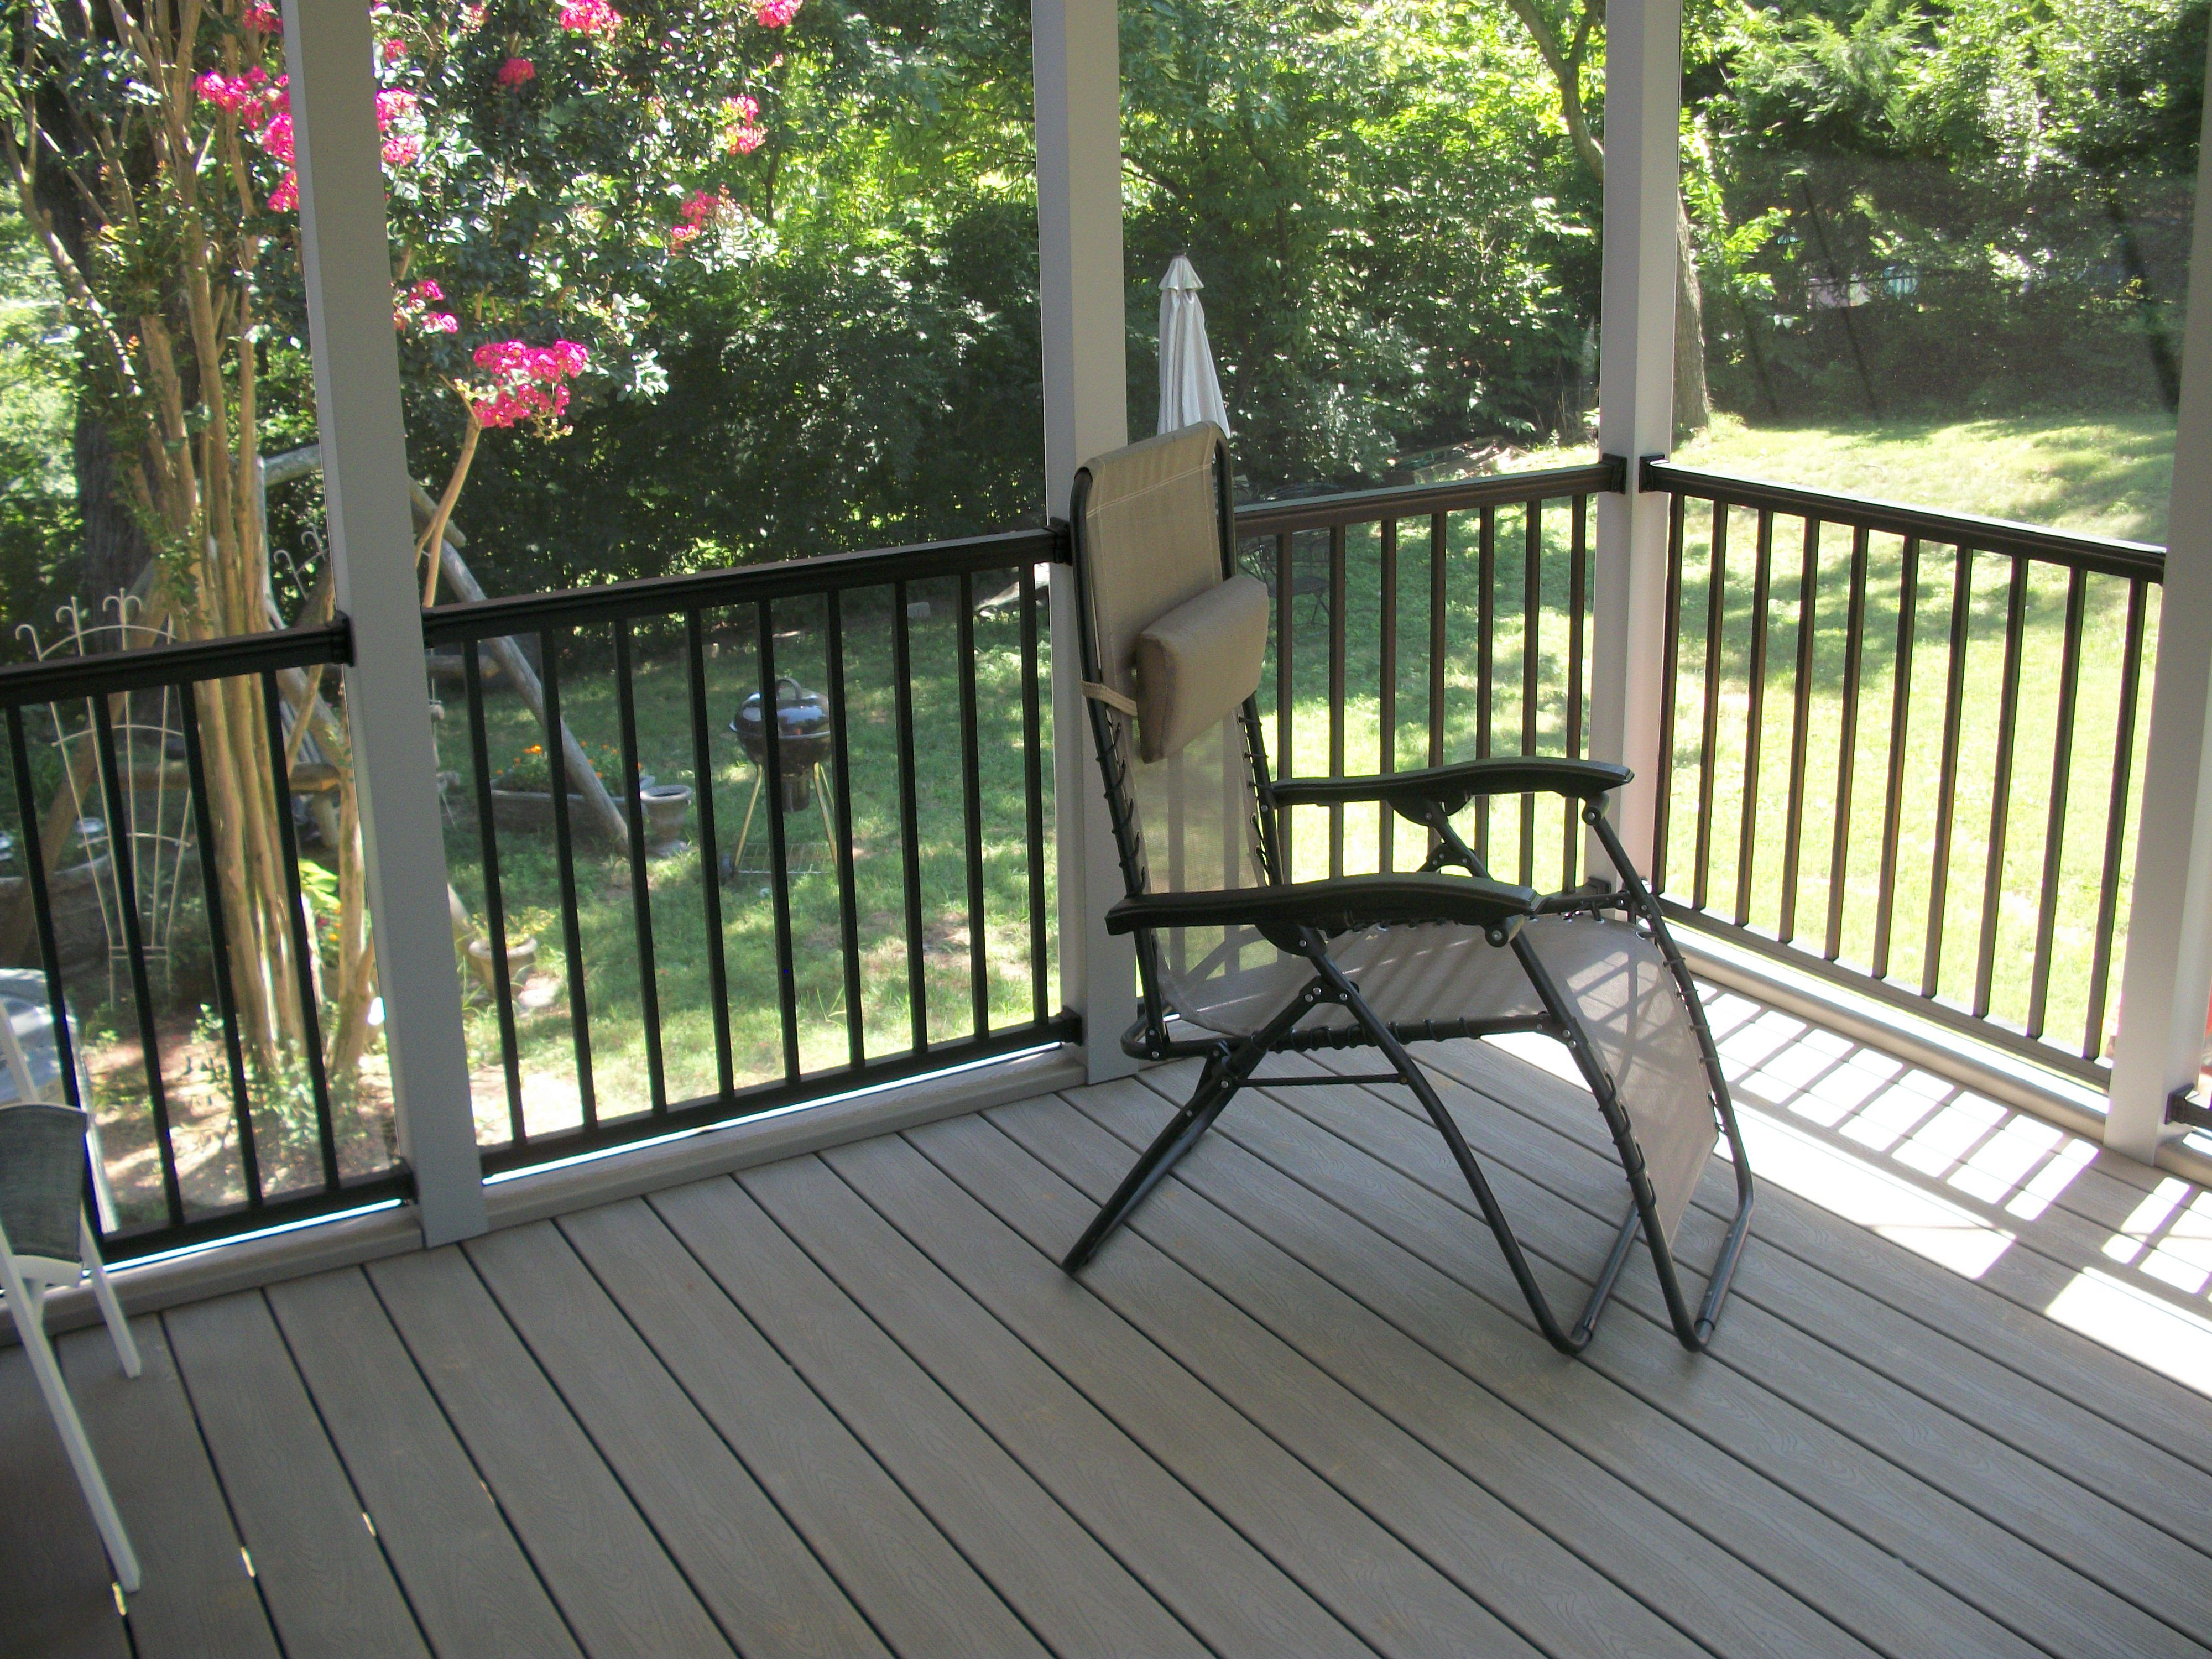 This Is A Small Trex Porch With Trex Railing System Down To A